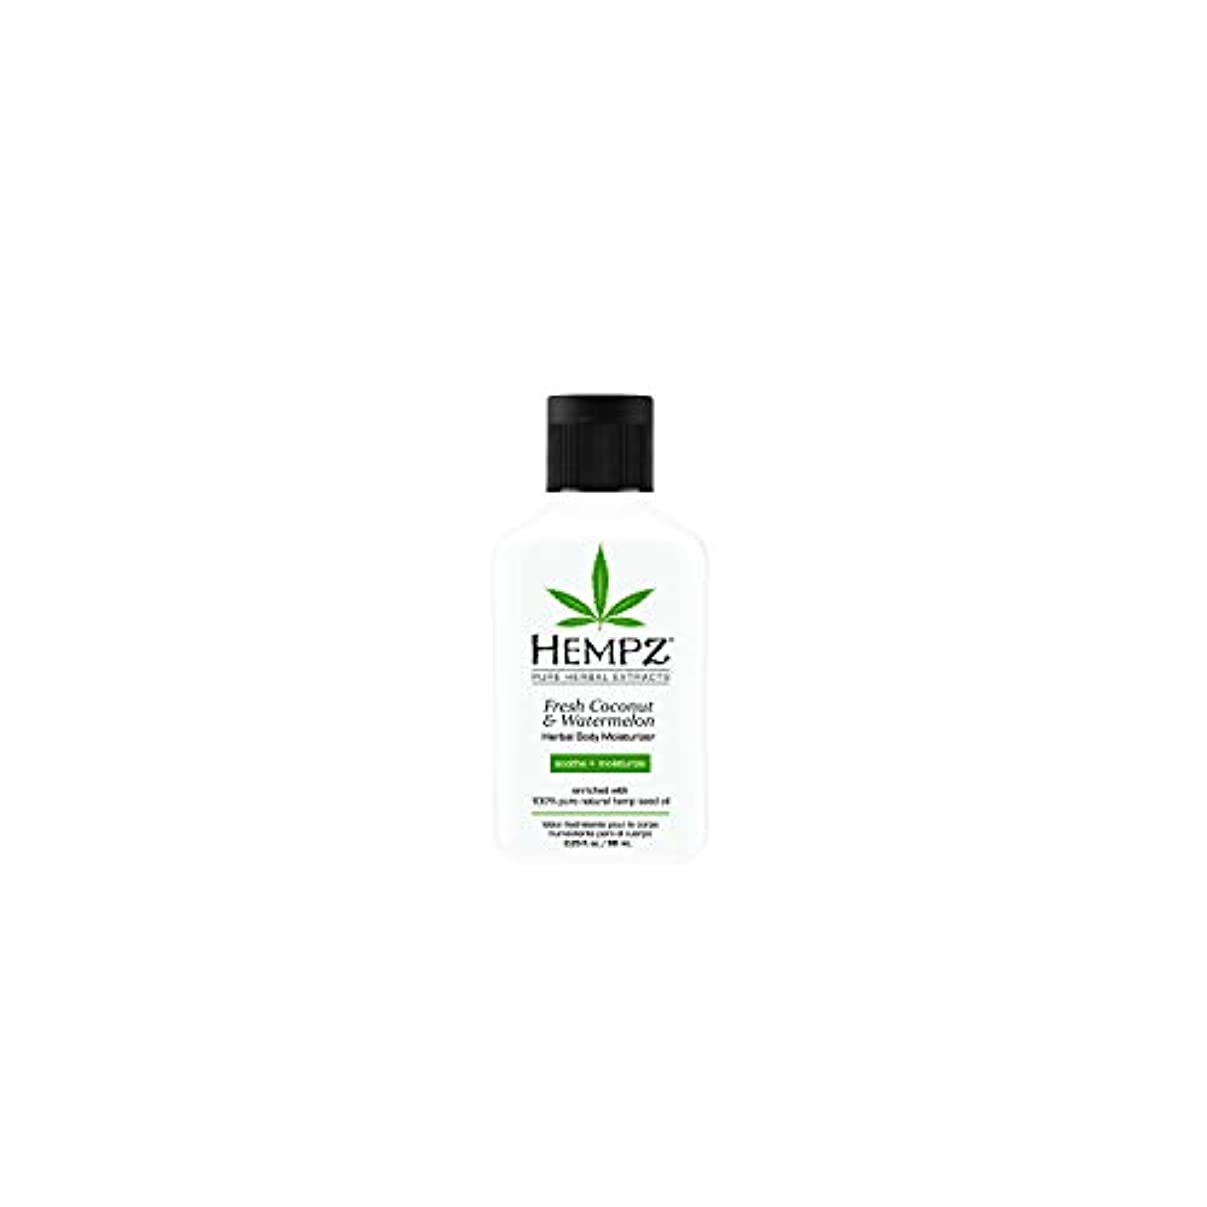 質素なゆでる無意味Hempz Herbal Body Moisturizer, Pearl White, Fresh Coconut/Watermelon, 2.25 Ounce by Hempz